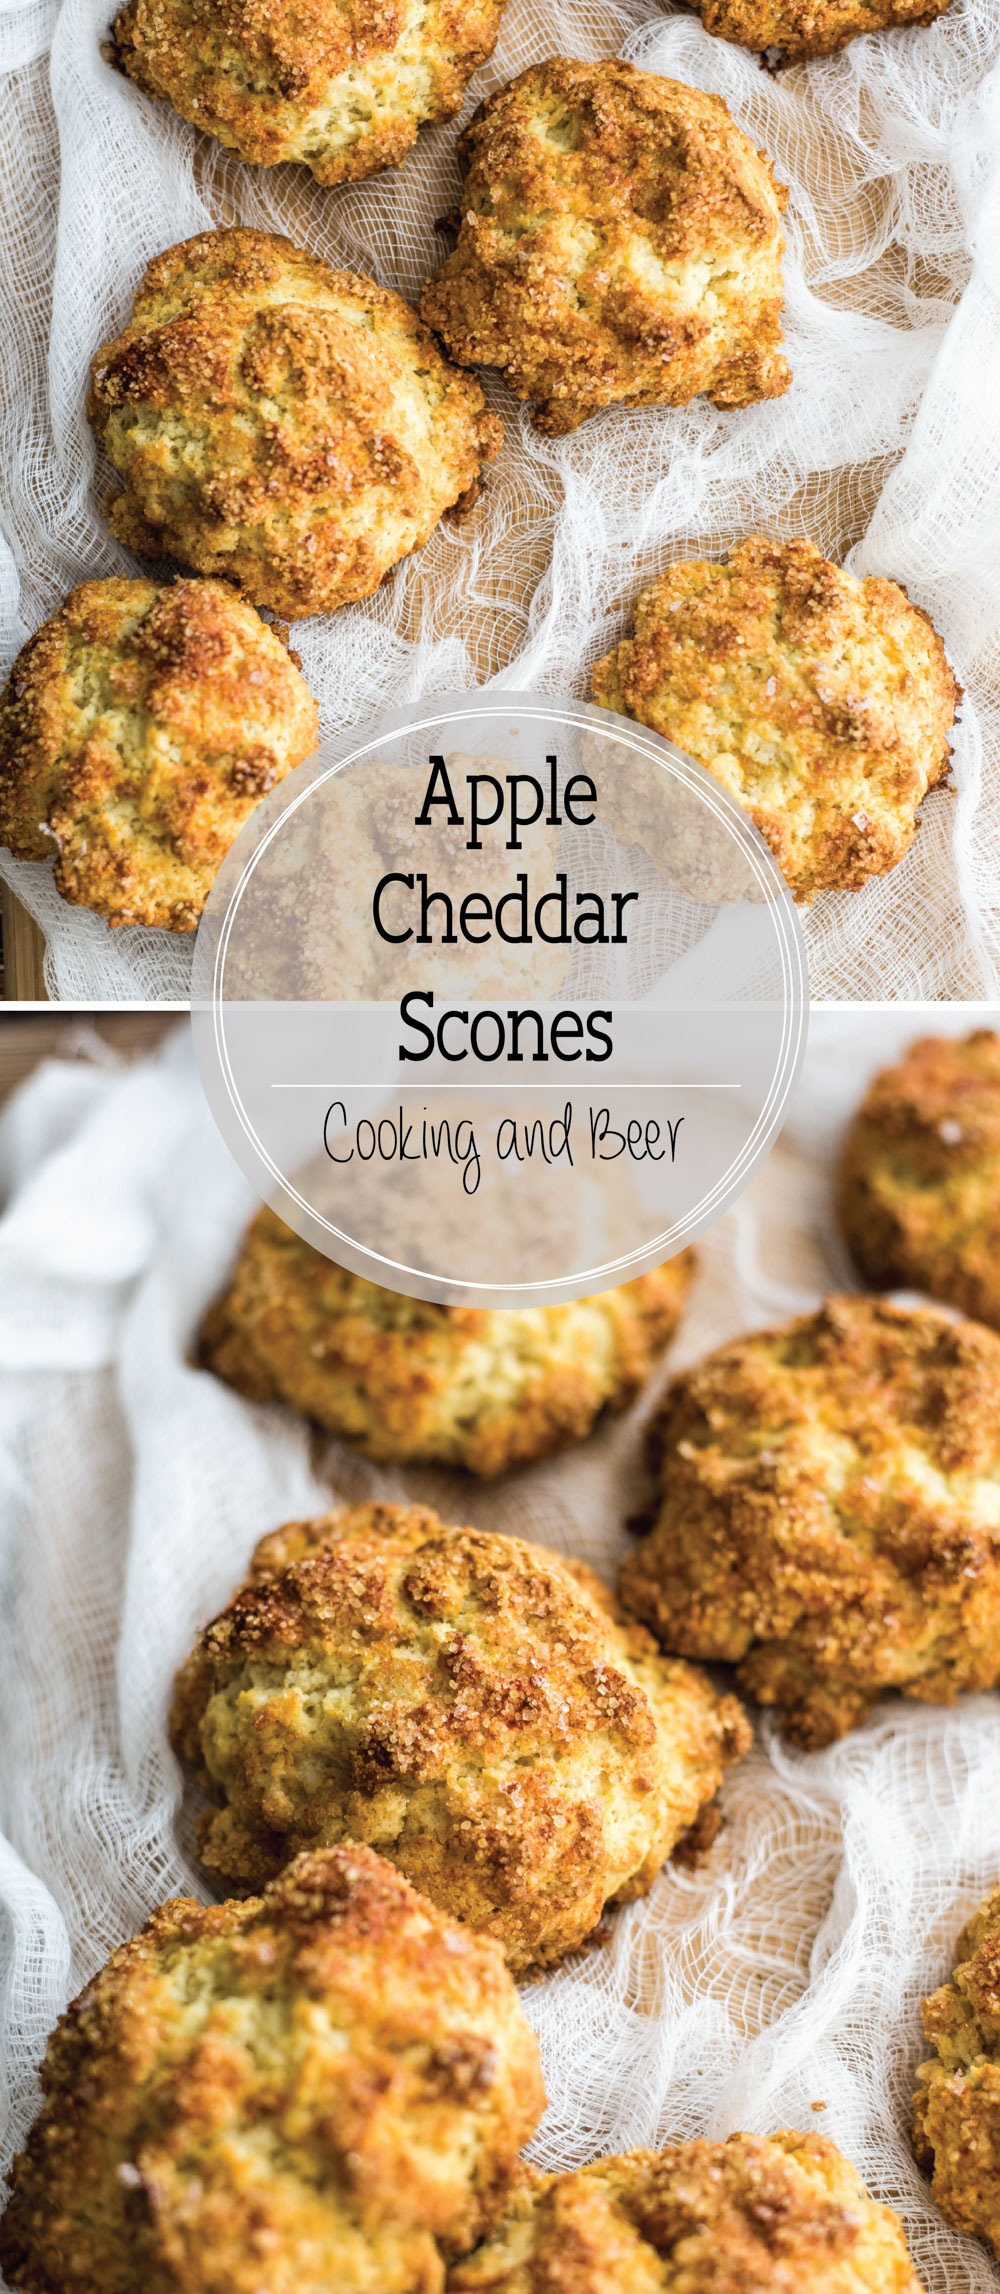 Apple cheddar scones are the perfect example of a sweet and savory colliding into one. They are the perfect breakfast bites!